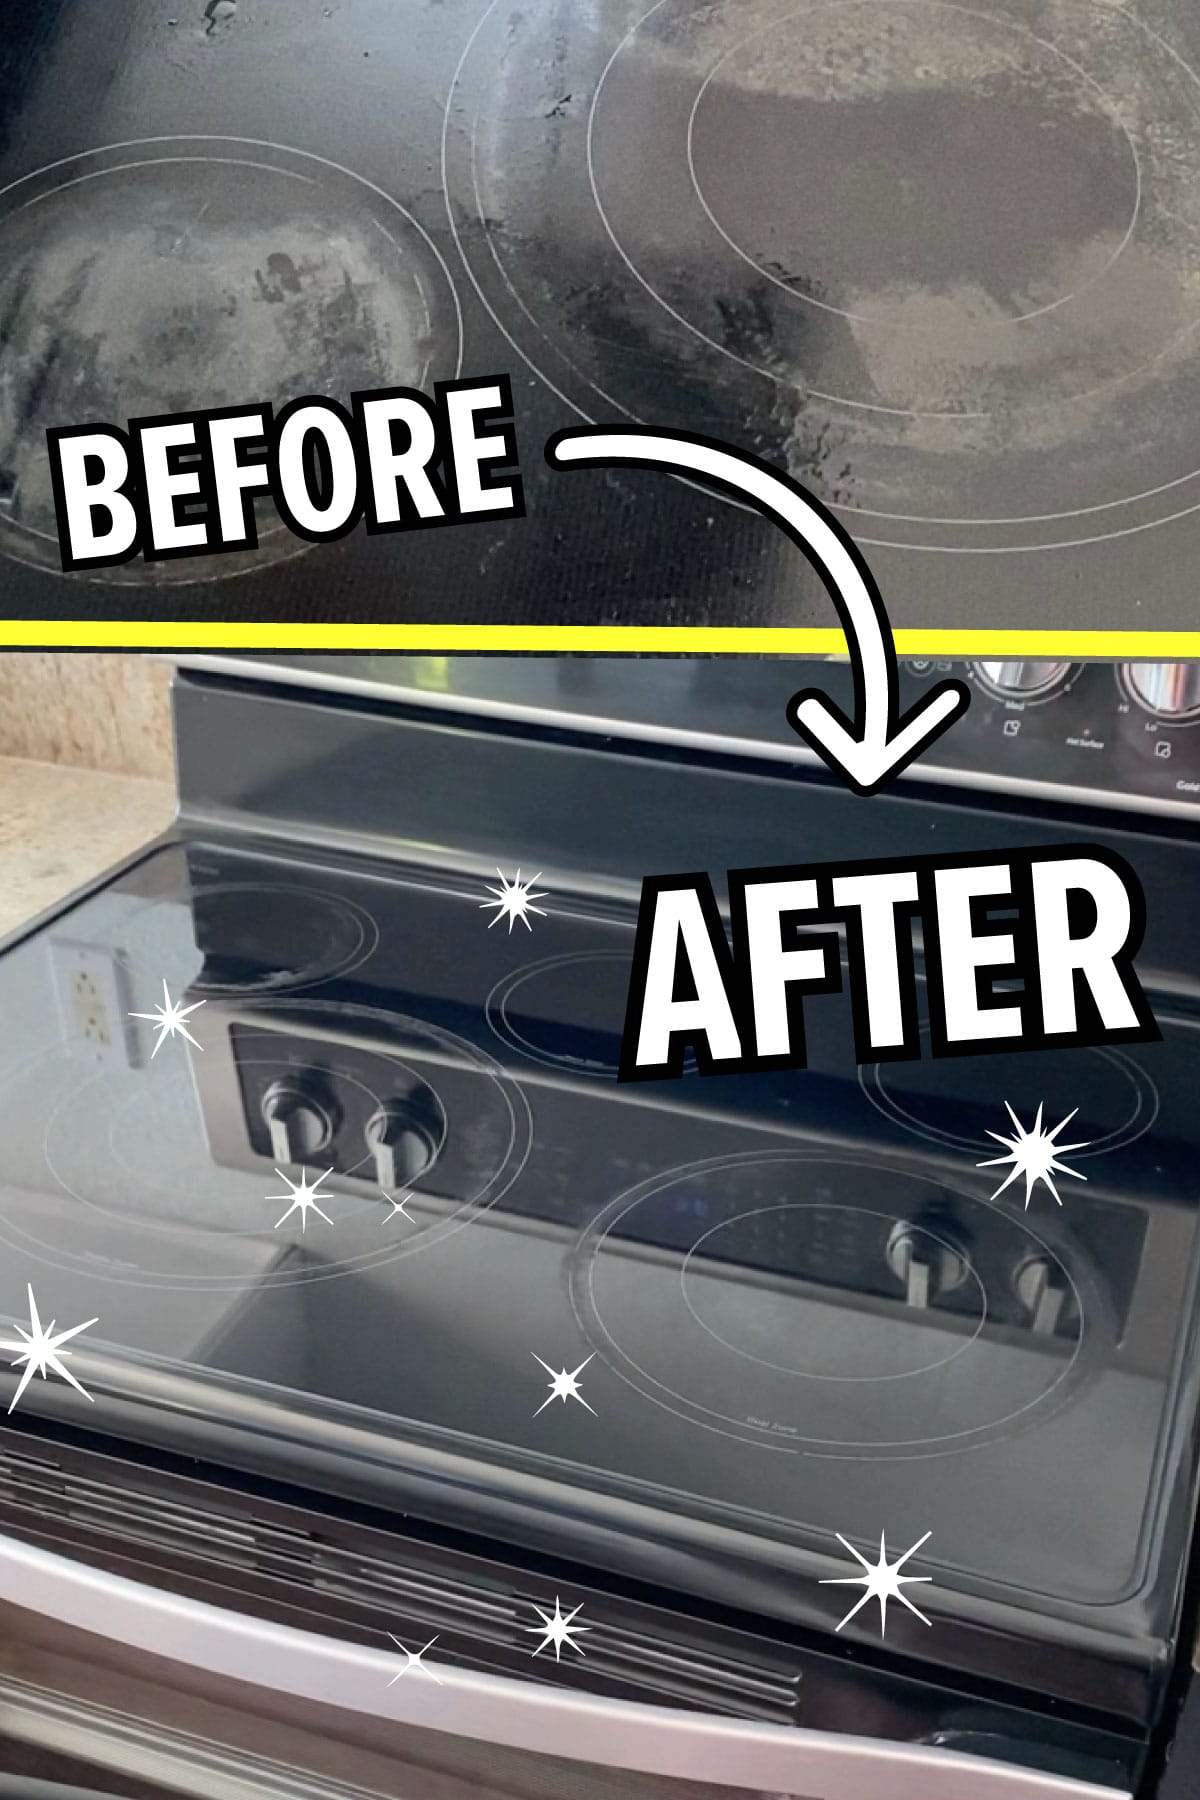 Before and after photos showing dirty then clean flat glass stovetop.